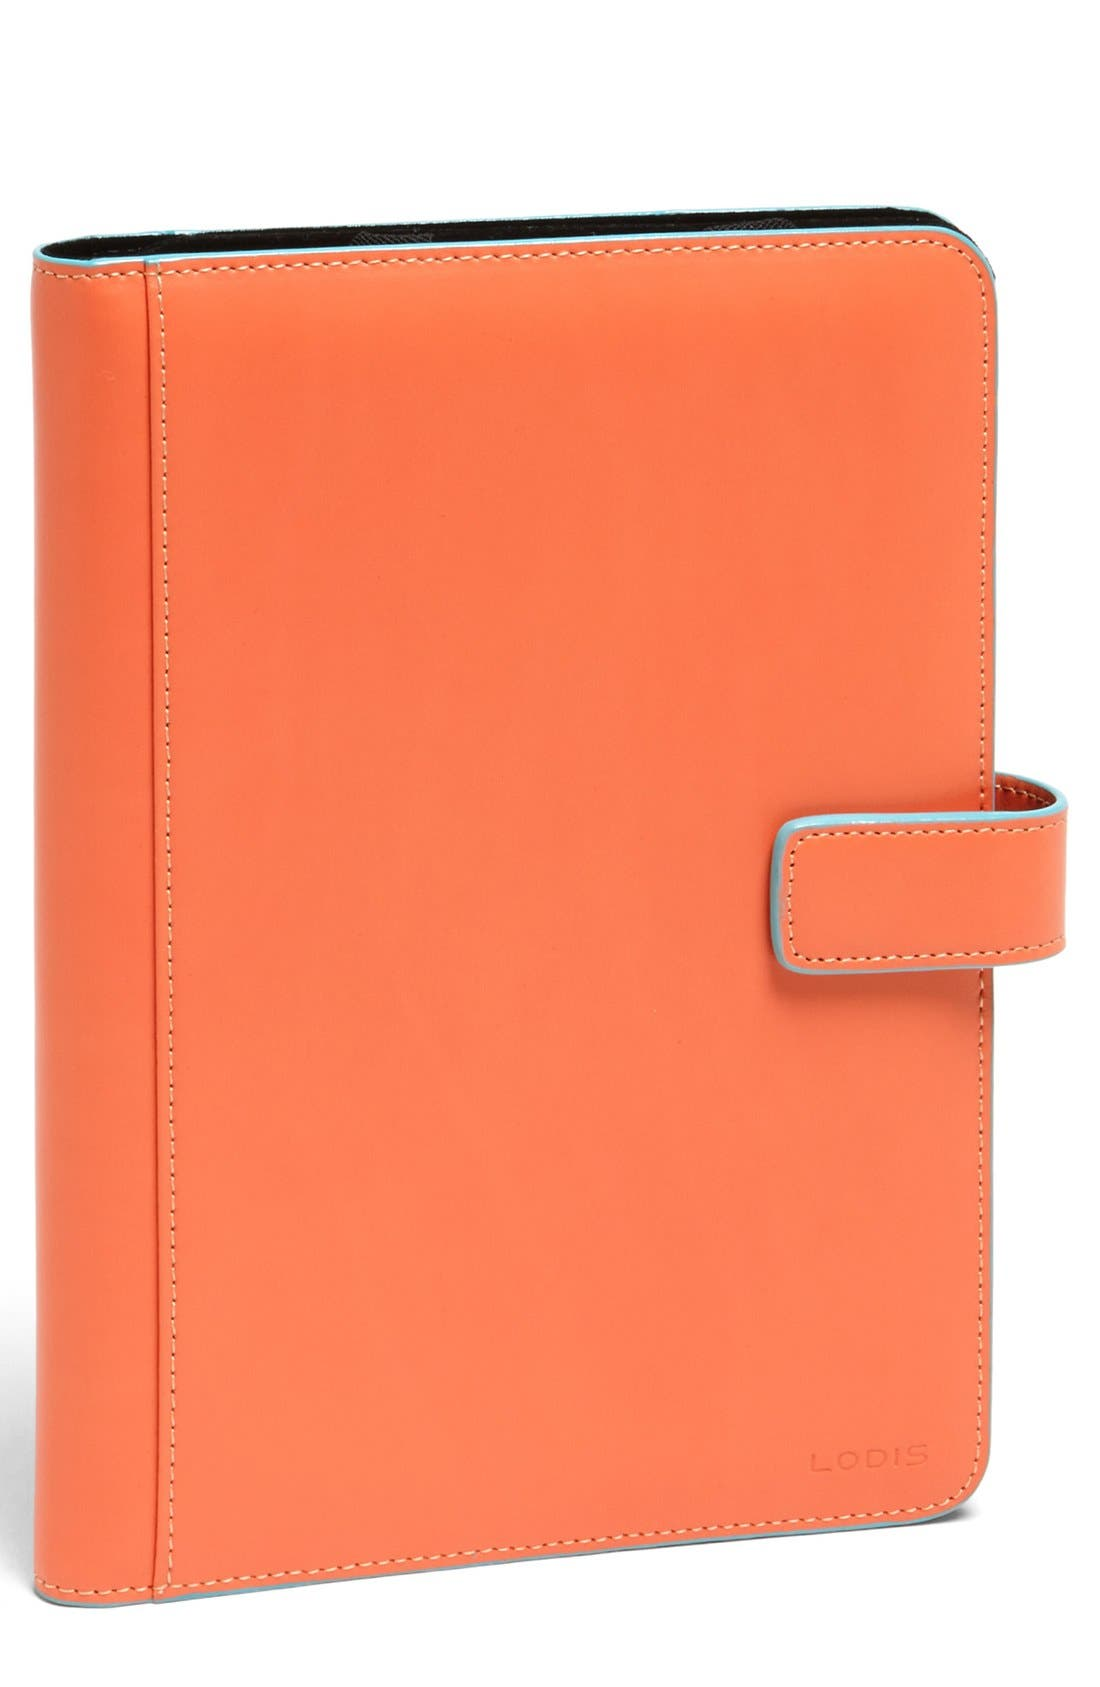 Main Image - Lodis 'Swivel' iPad mini Case